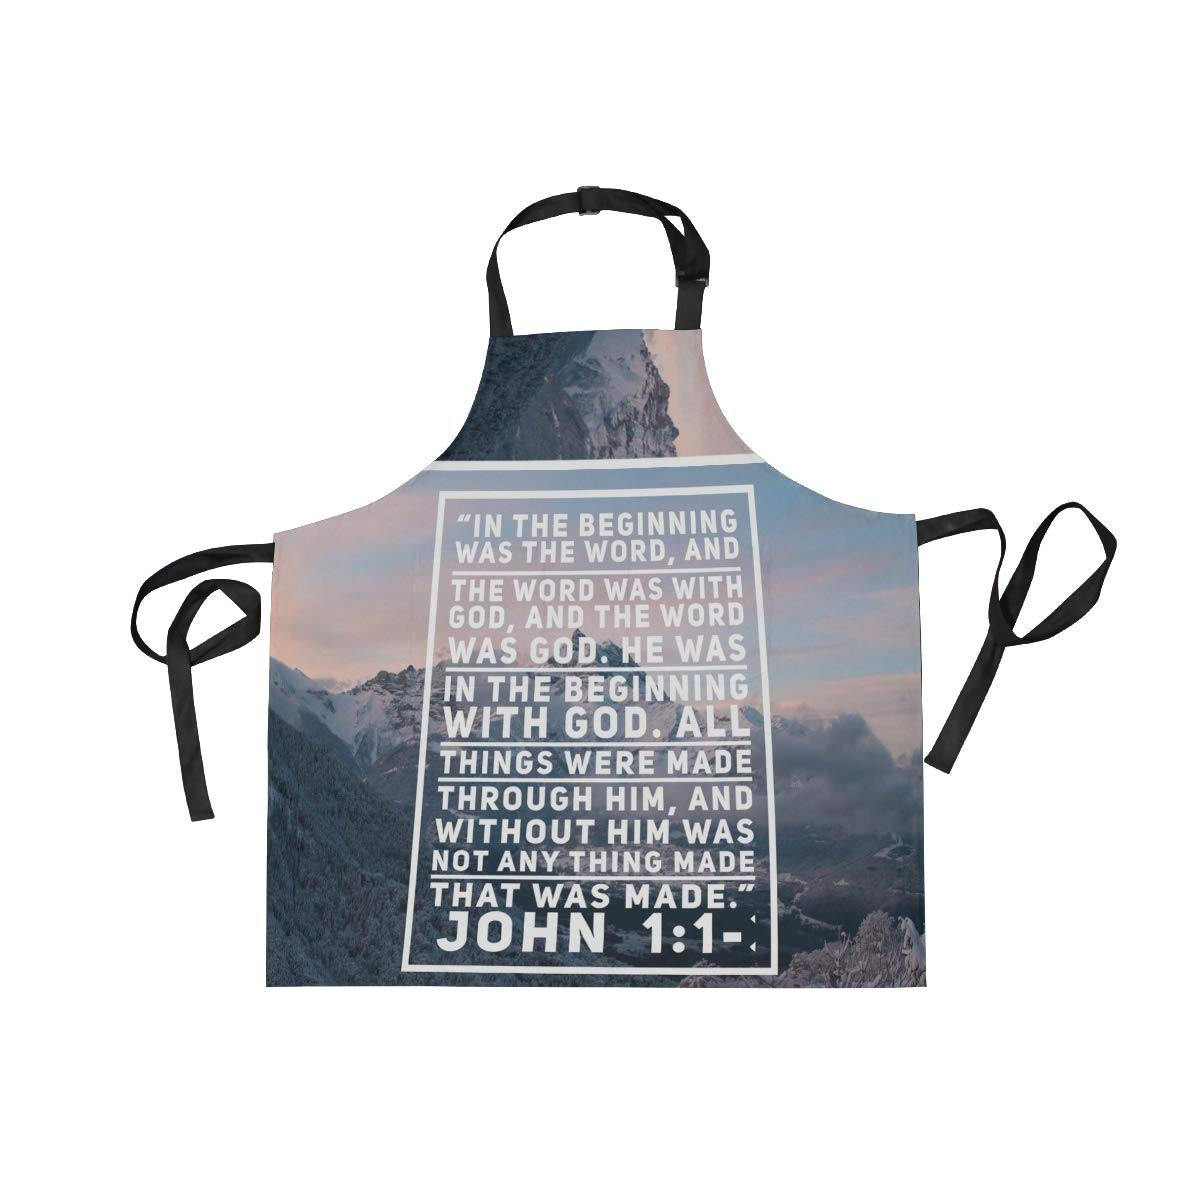 Unisex Apron Christian Verse Bible Snow Mountain Winter Adjustable Apron with Pockets for Men Women Kitchen Personal Decor Cooking Baking Kitchen Gardening Waist Apron Adult Apron,Twill,Multicolor